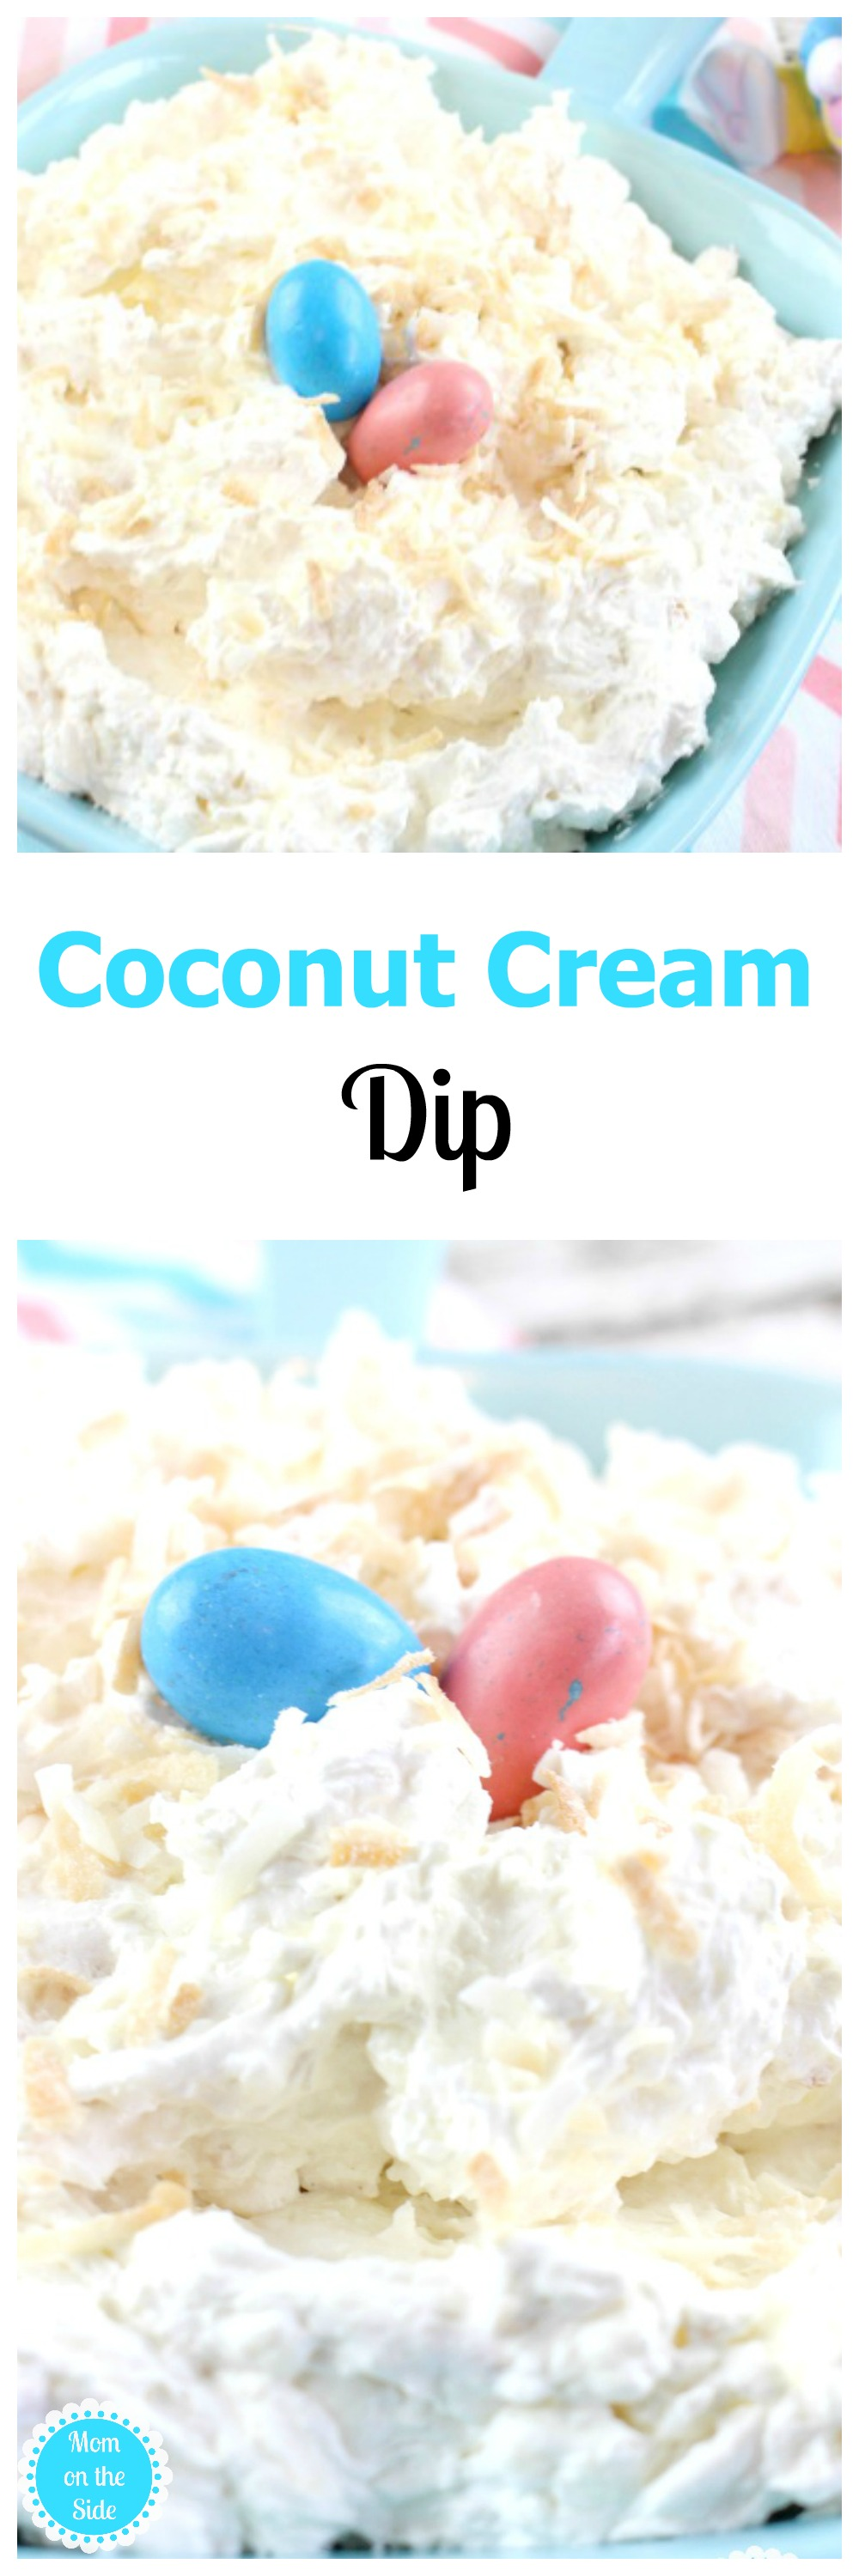 Coconut Cream Dip is super easy to make and deliciously luscious! Toasted coconut with a hint of caramel sauce is just what your Easter party needs.